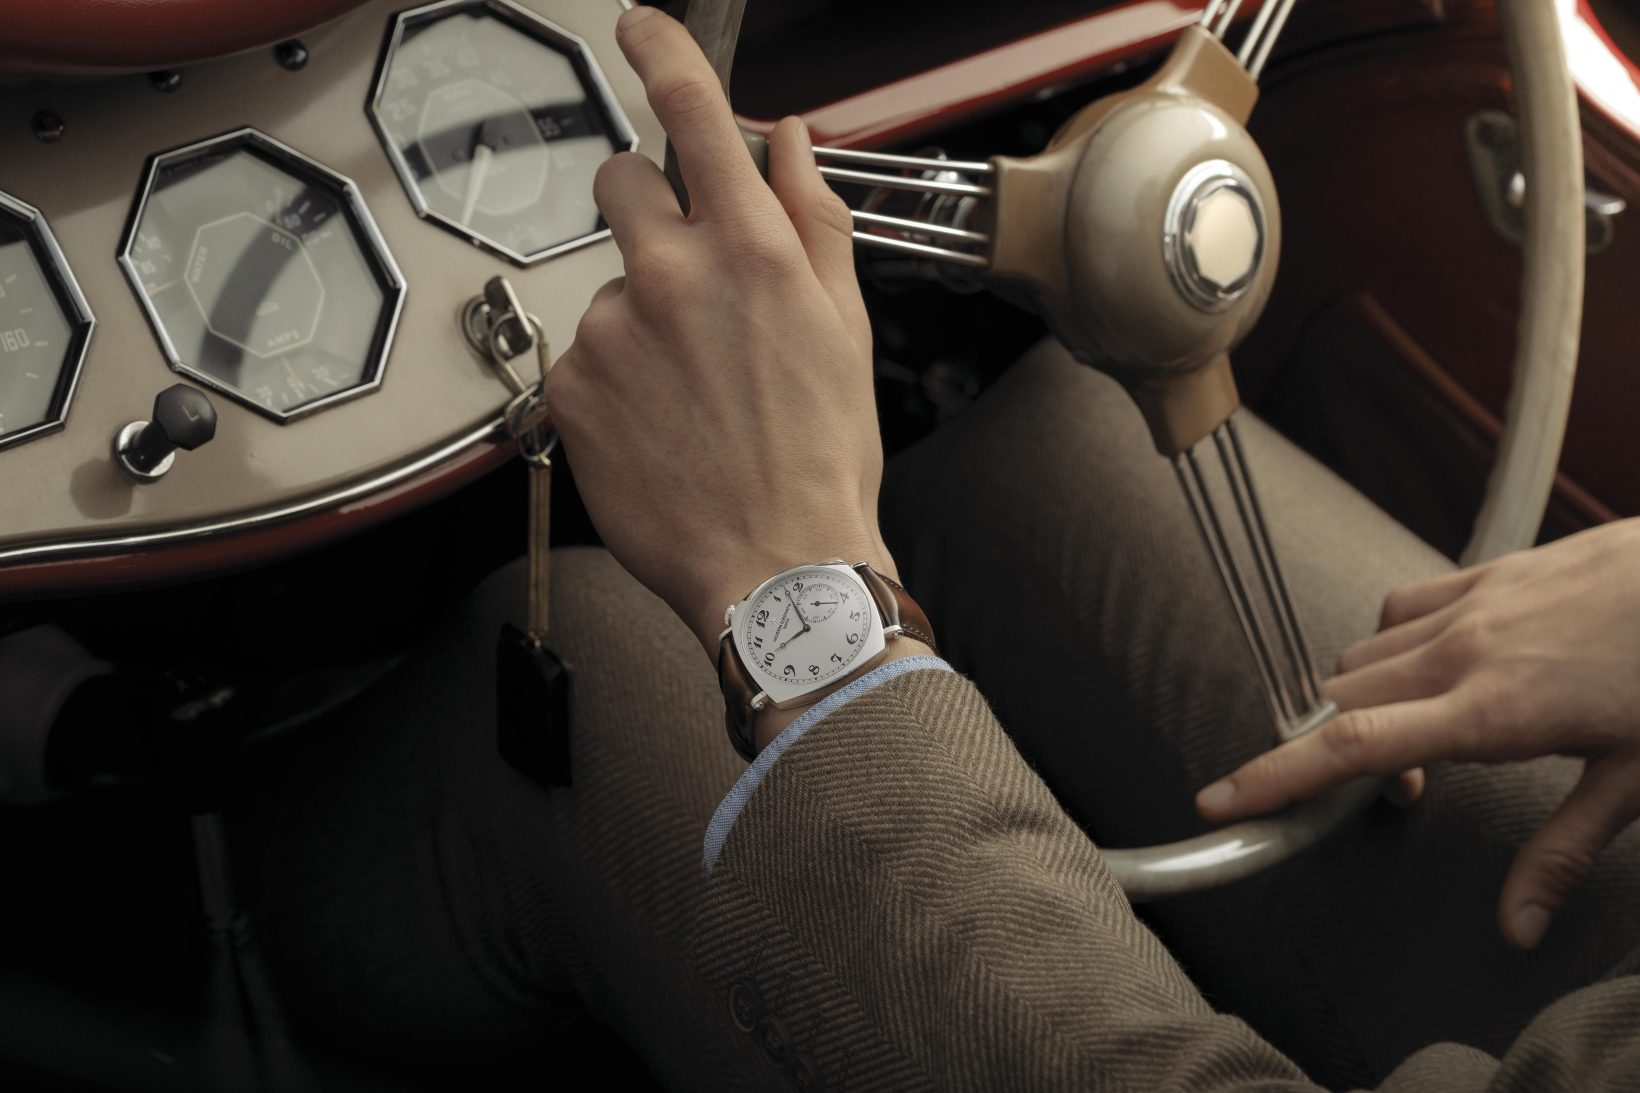 The free spirit of icons in watchmaking